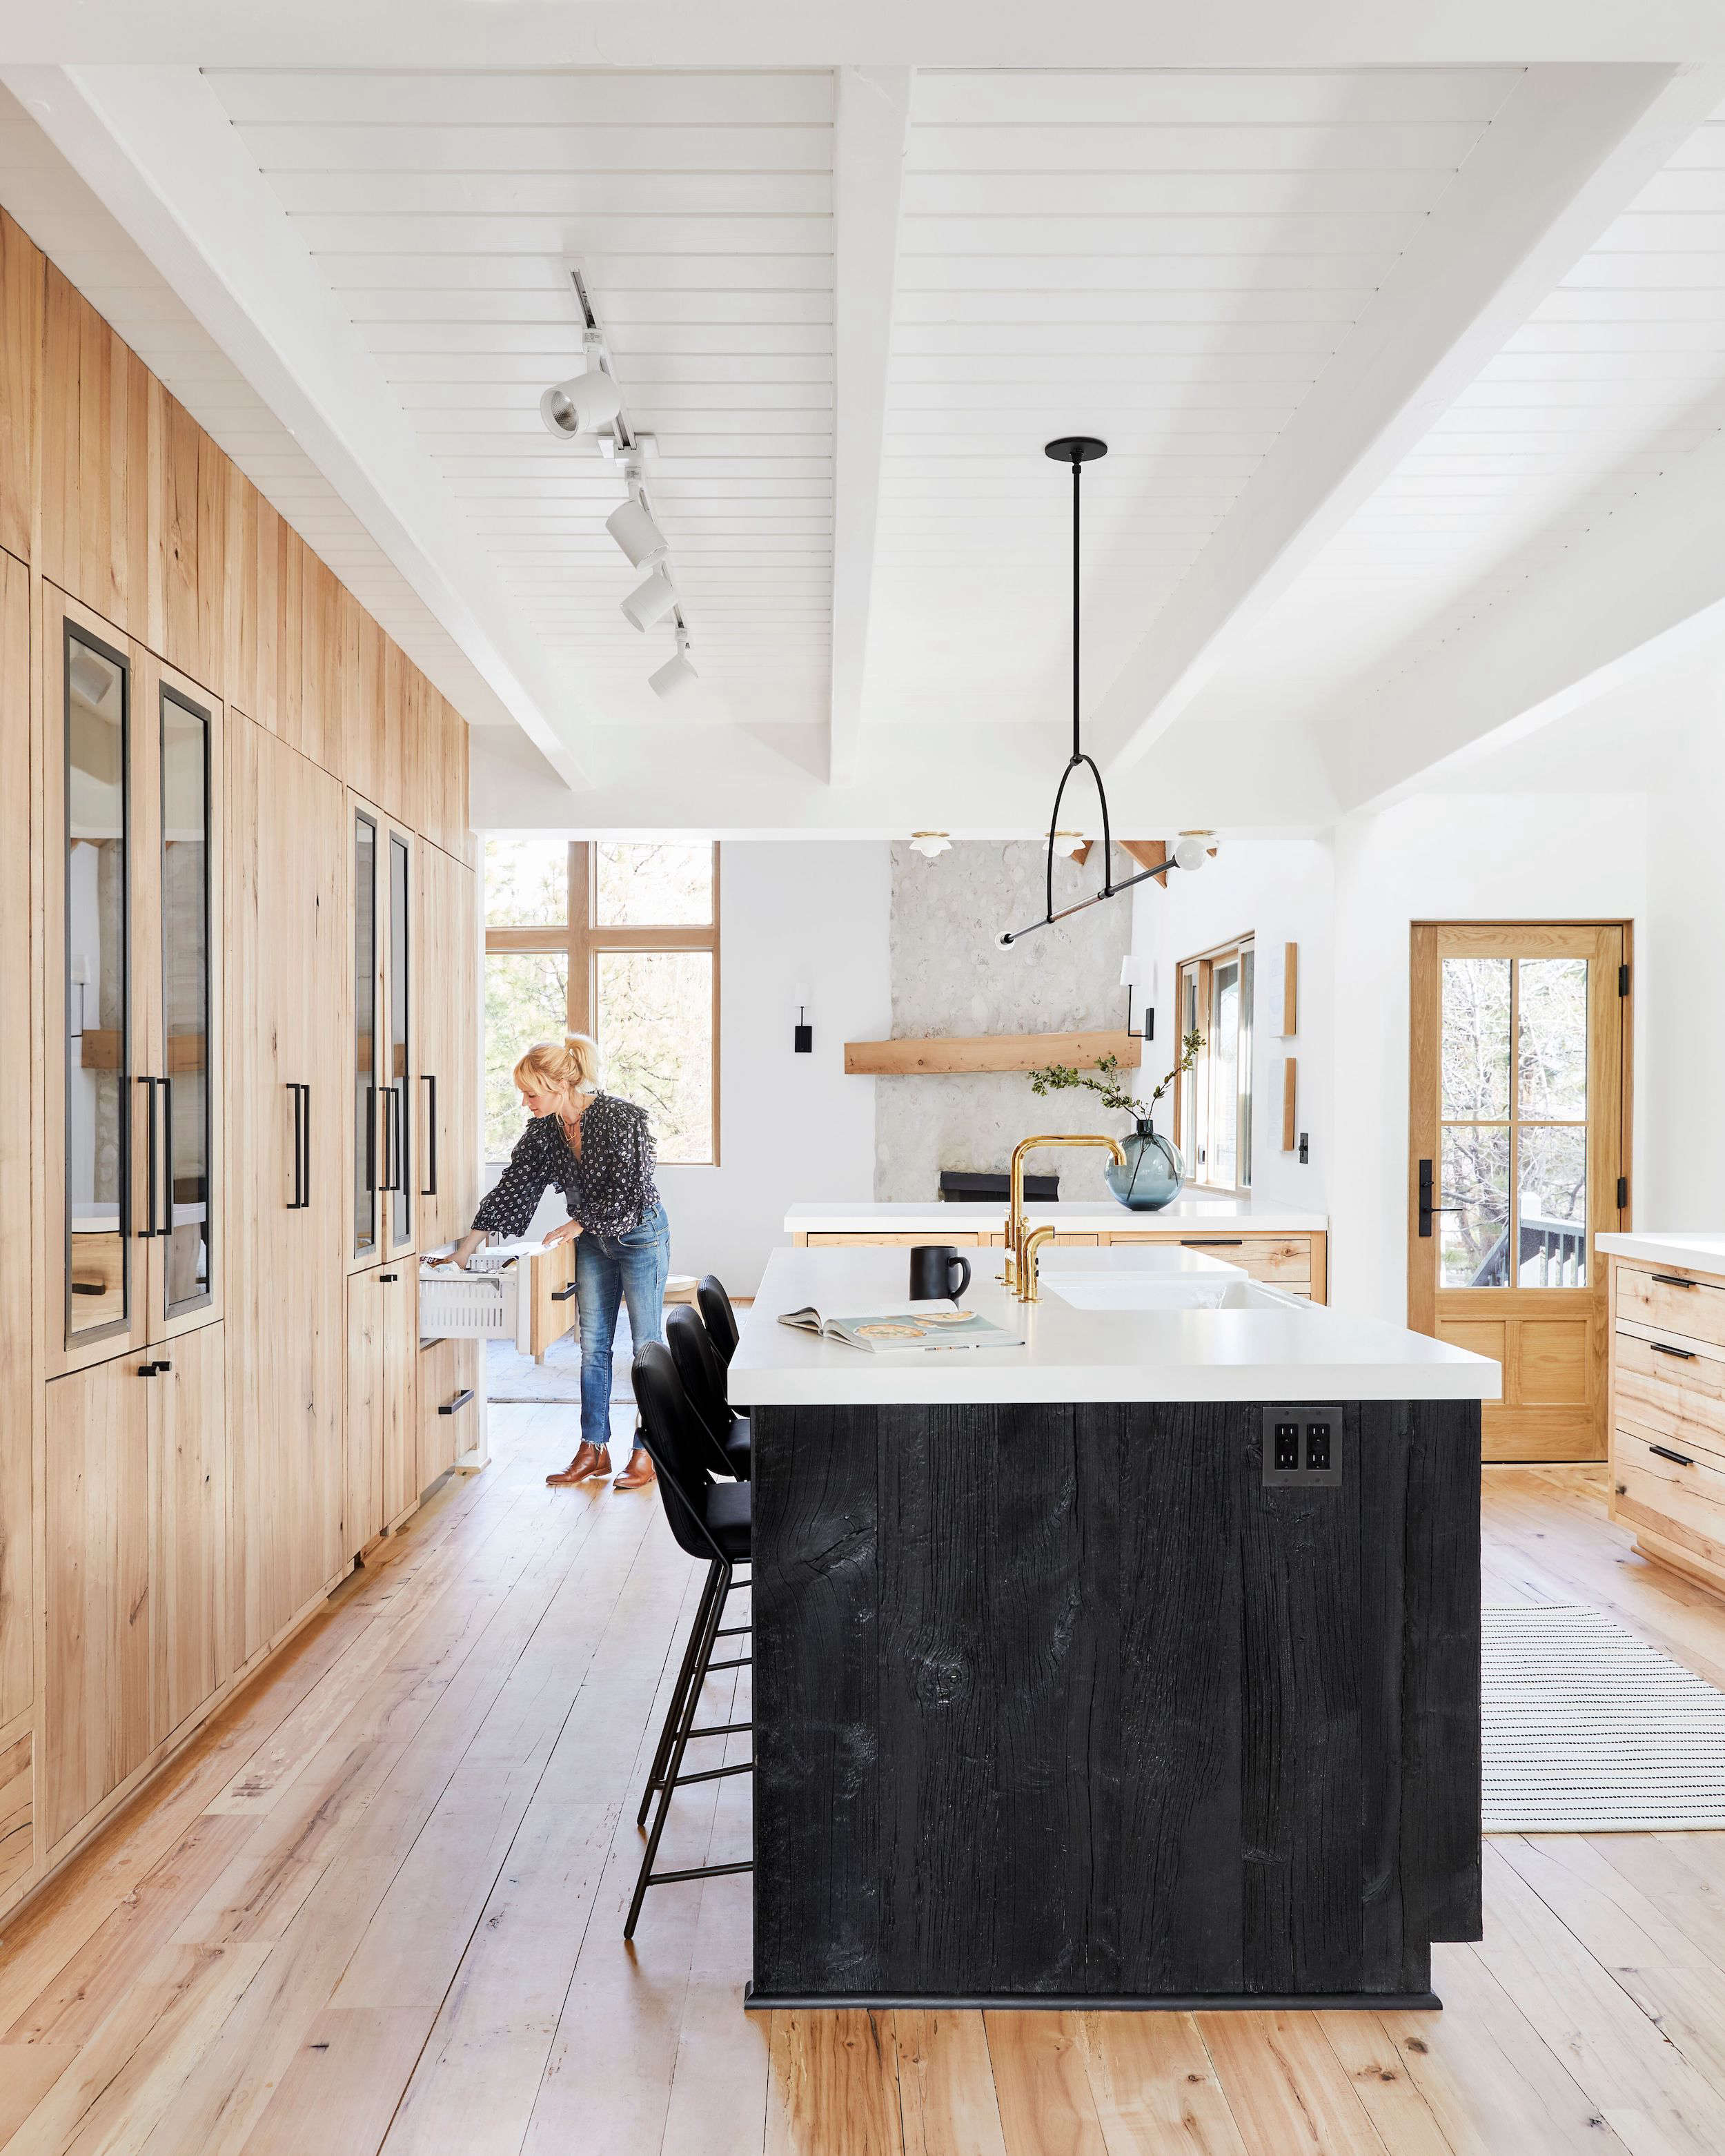 10 Smart Storage Ideas to Steal from Emily Henderson's Mountain House